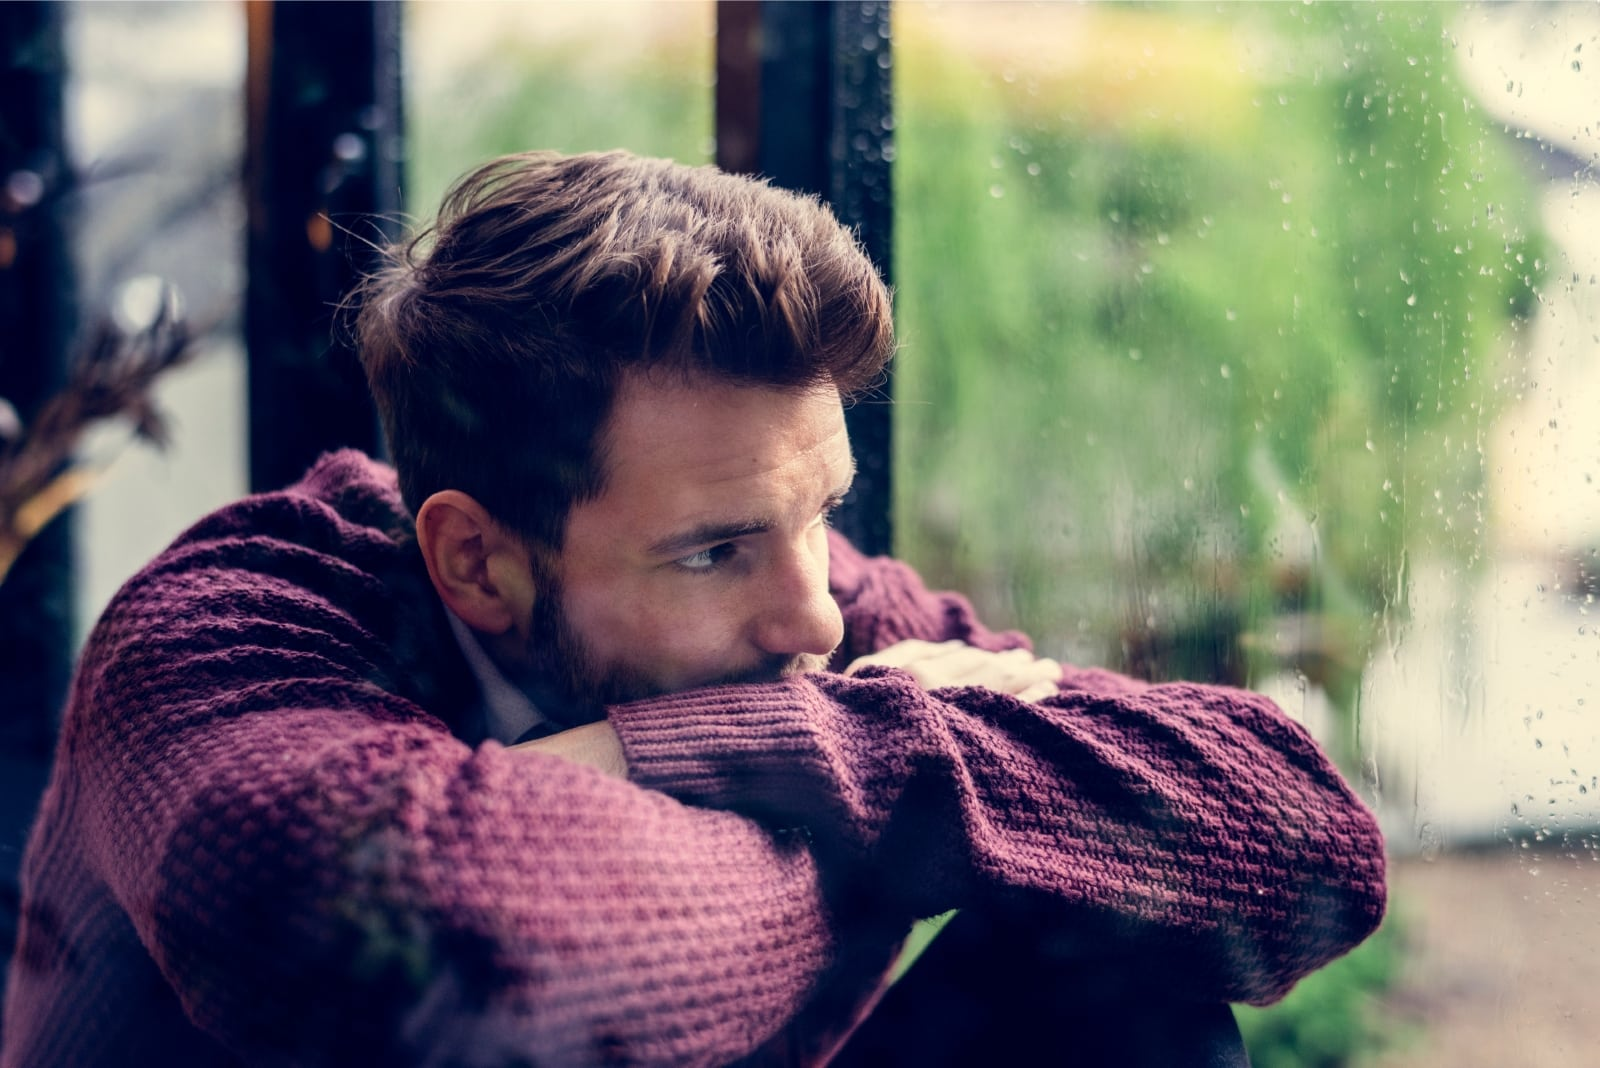 sad man in burgundy sweater sitting near window